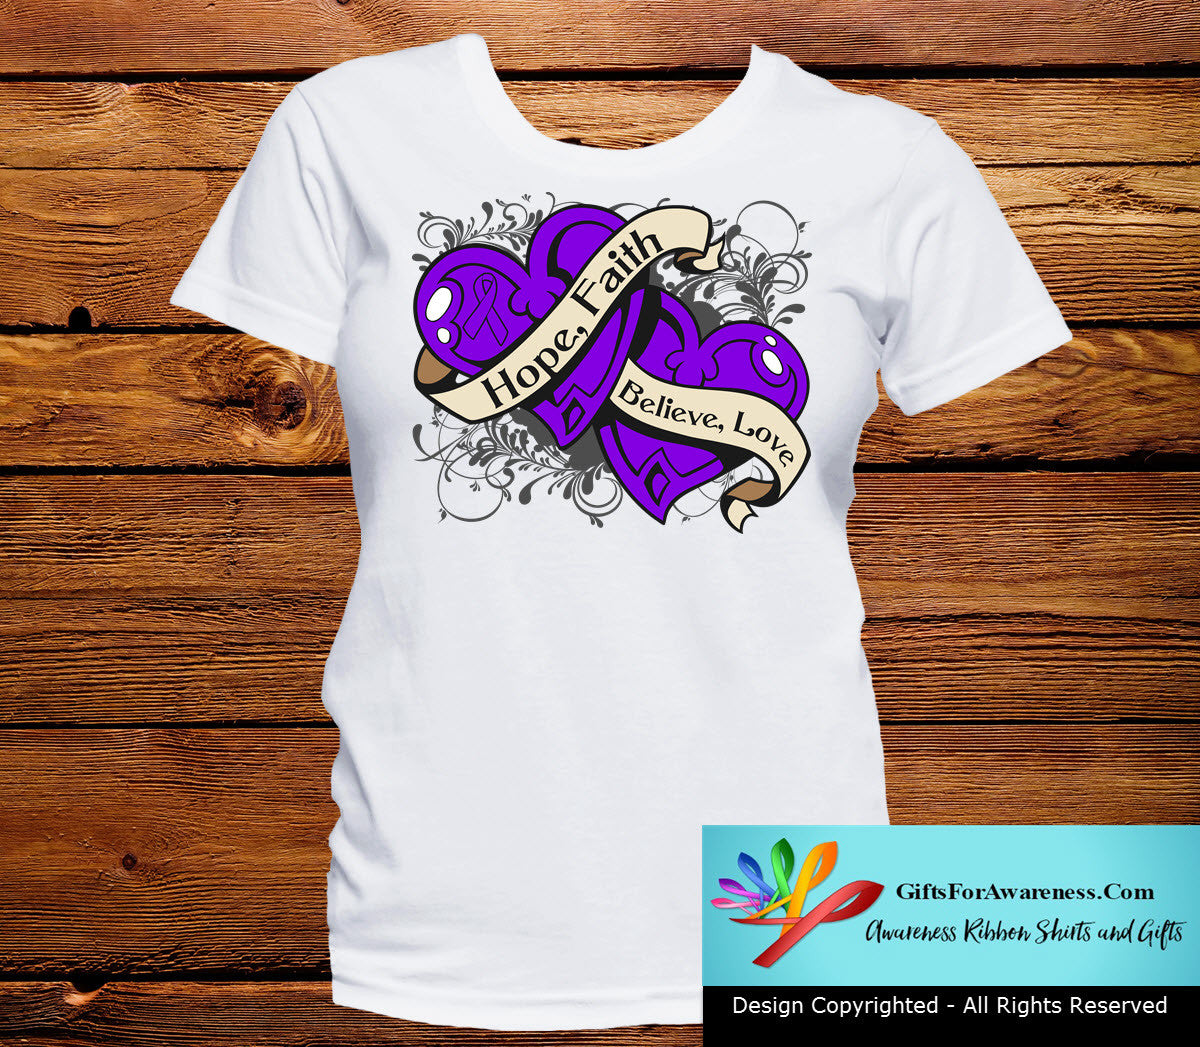 Leiomyosarcoma Hope Believe Faith Love Shirts - GiftsForAwareness